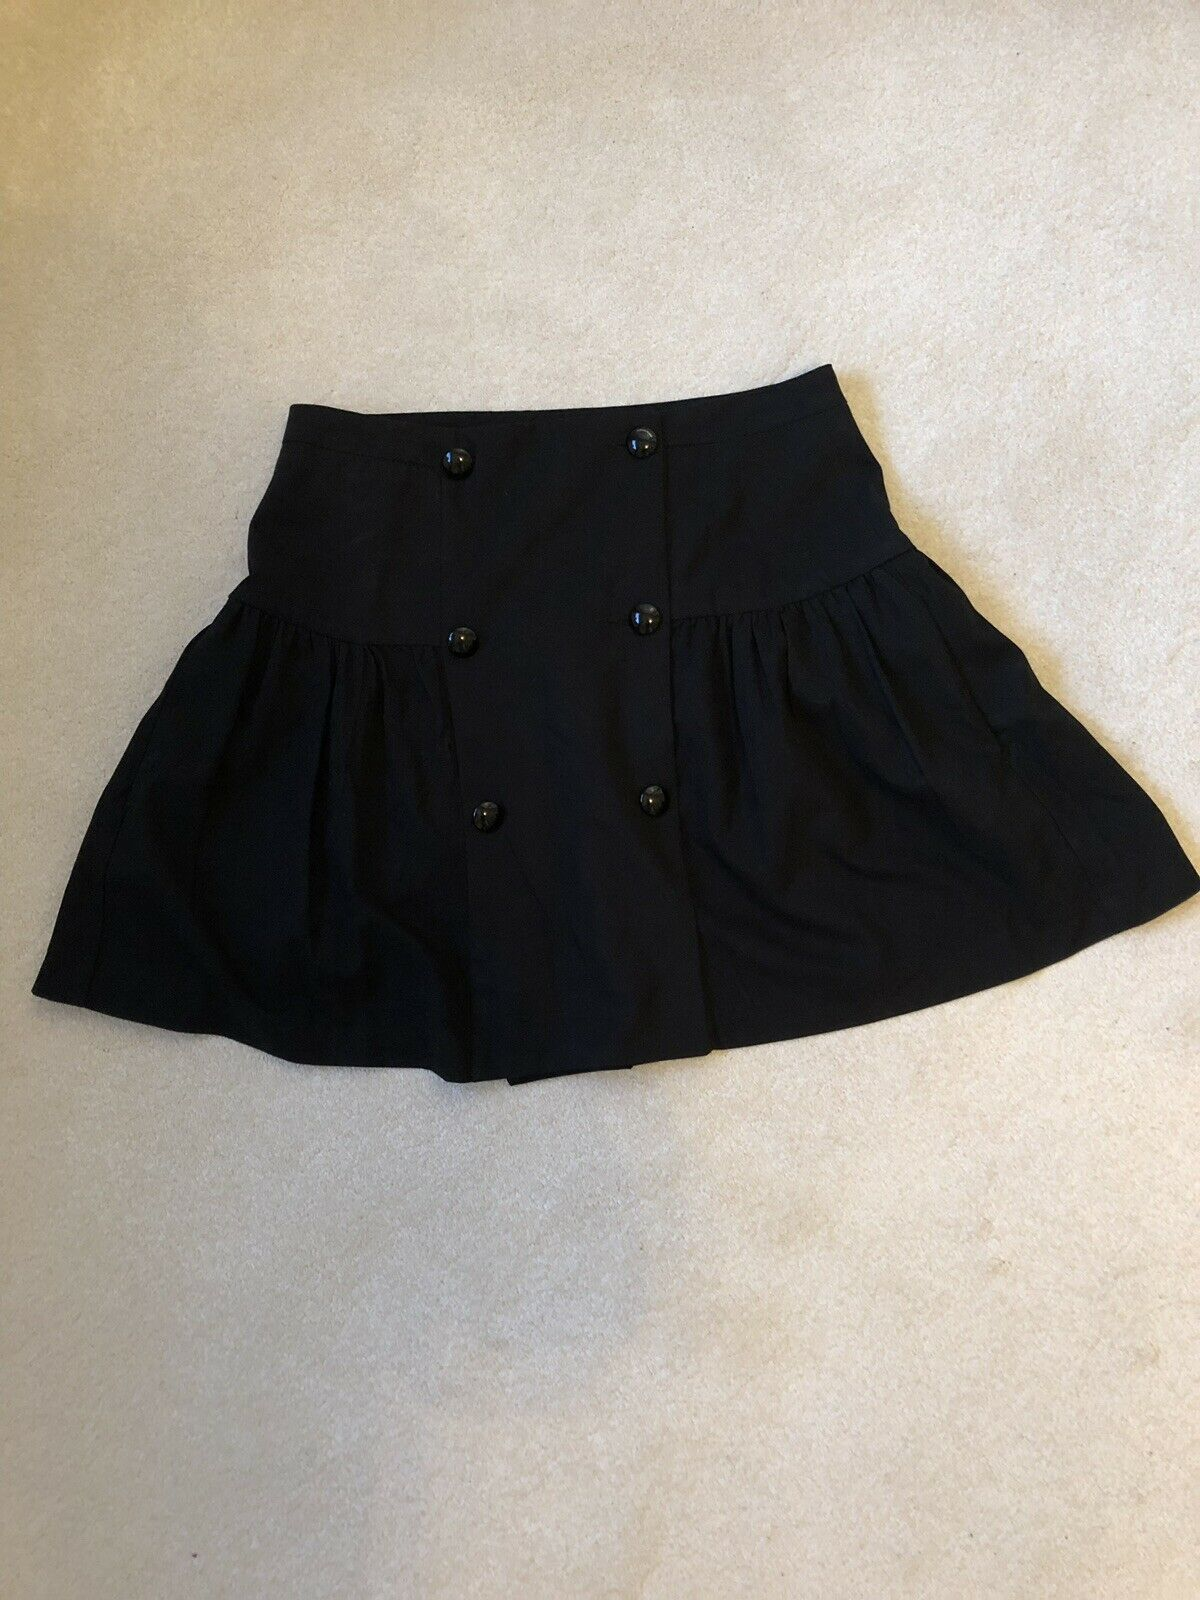 Armani Jeans Skirt Perfect Condition